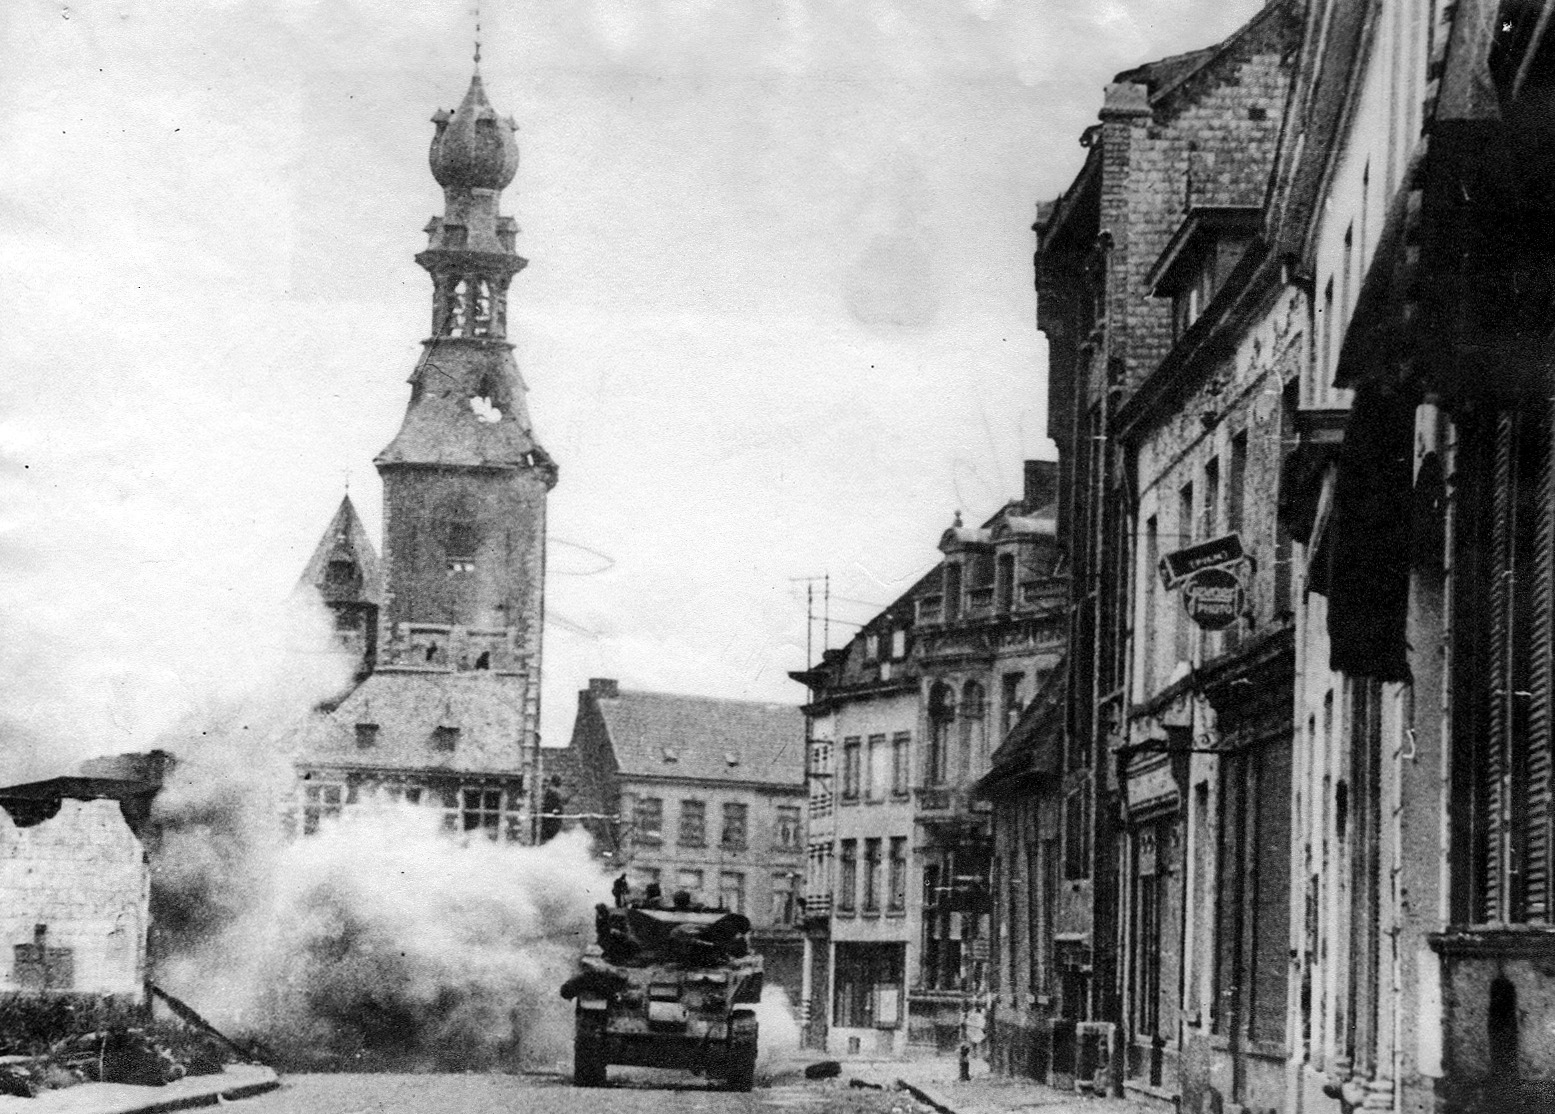 Polish tank entering Tielt